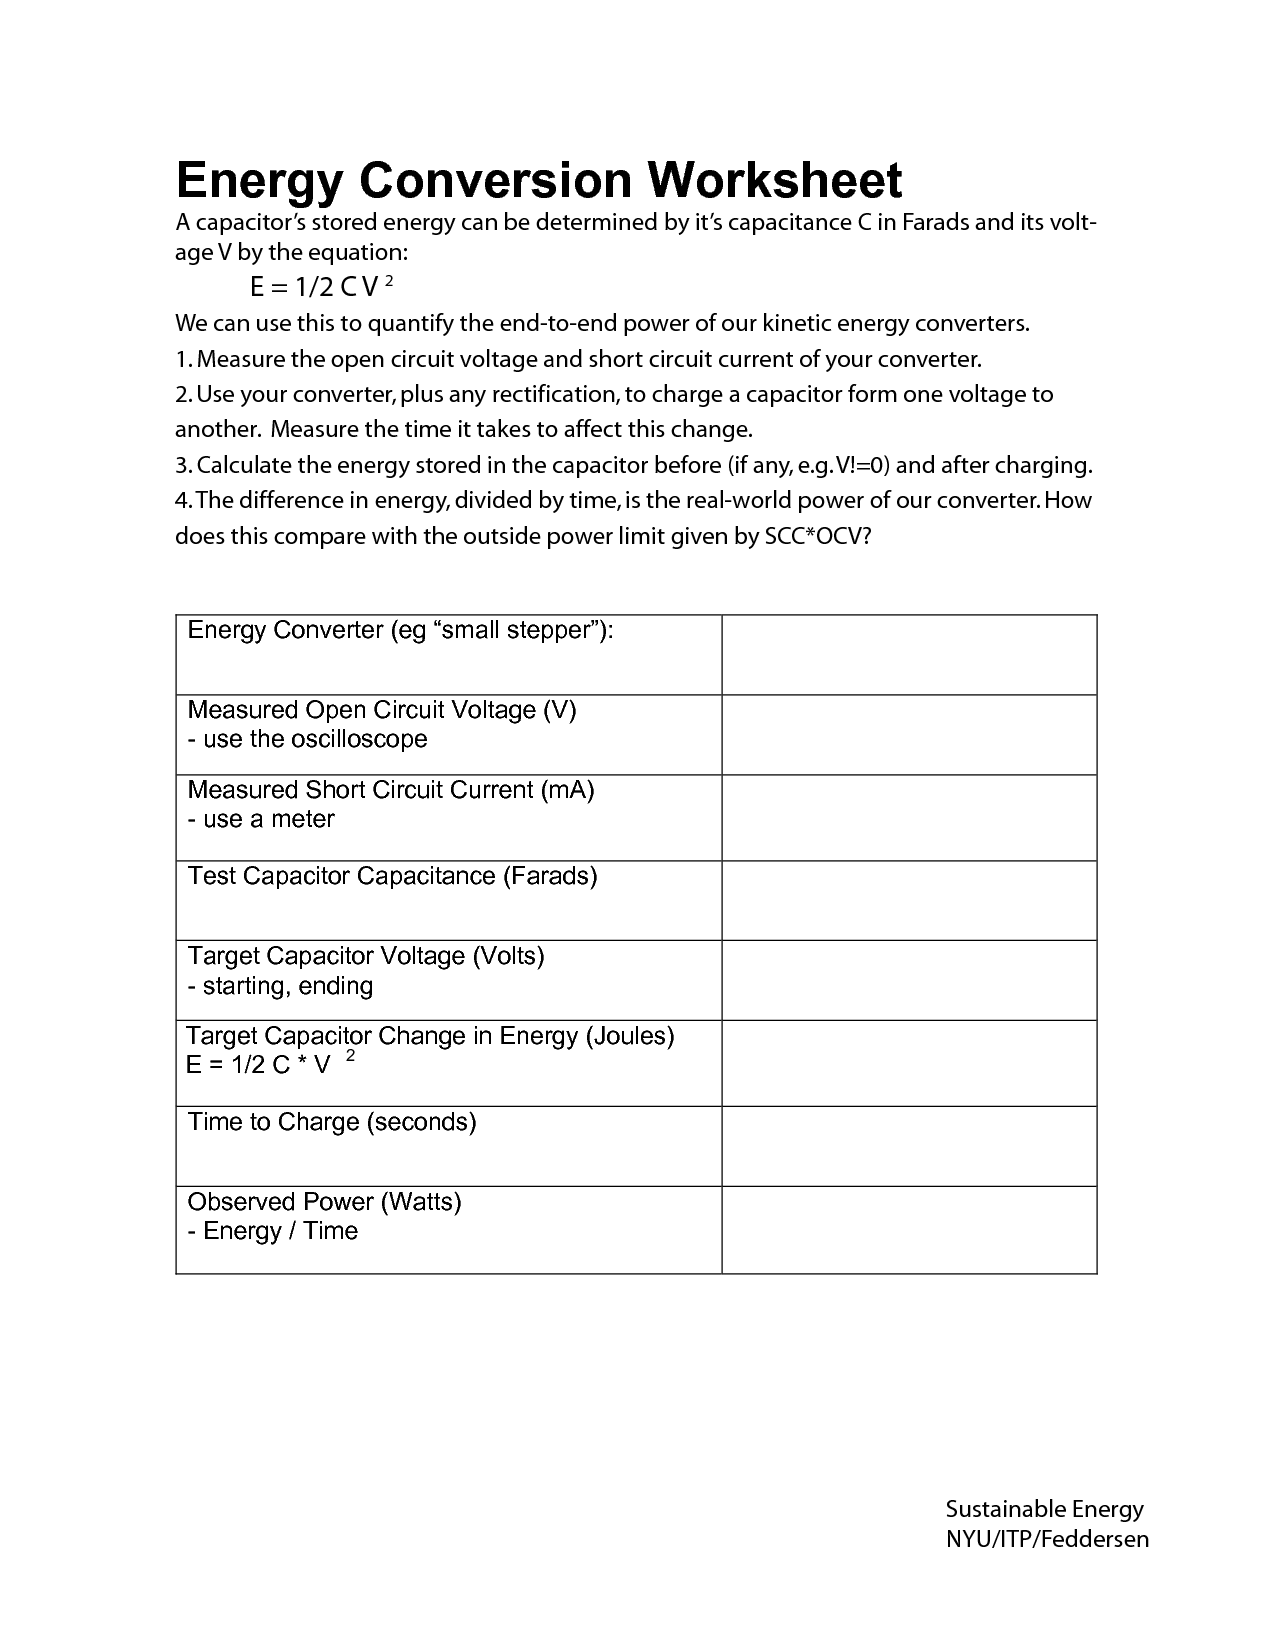 Worksheet On Energy Transformation